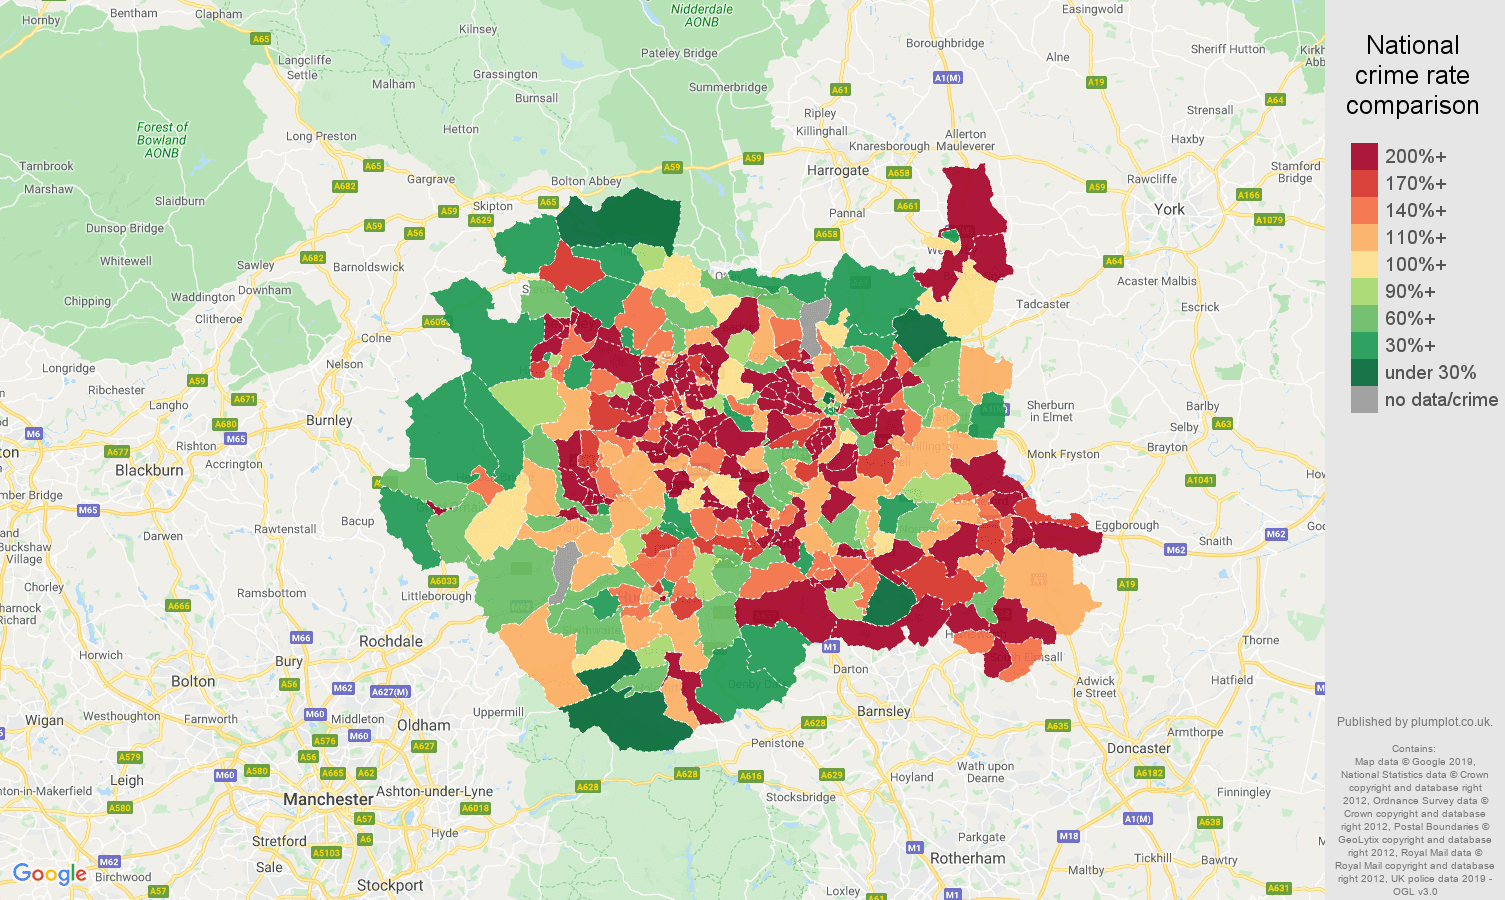 West Yorkshire other crime rate comparison map